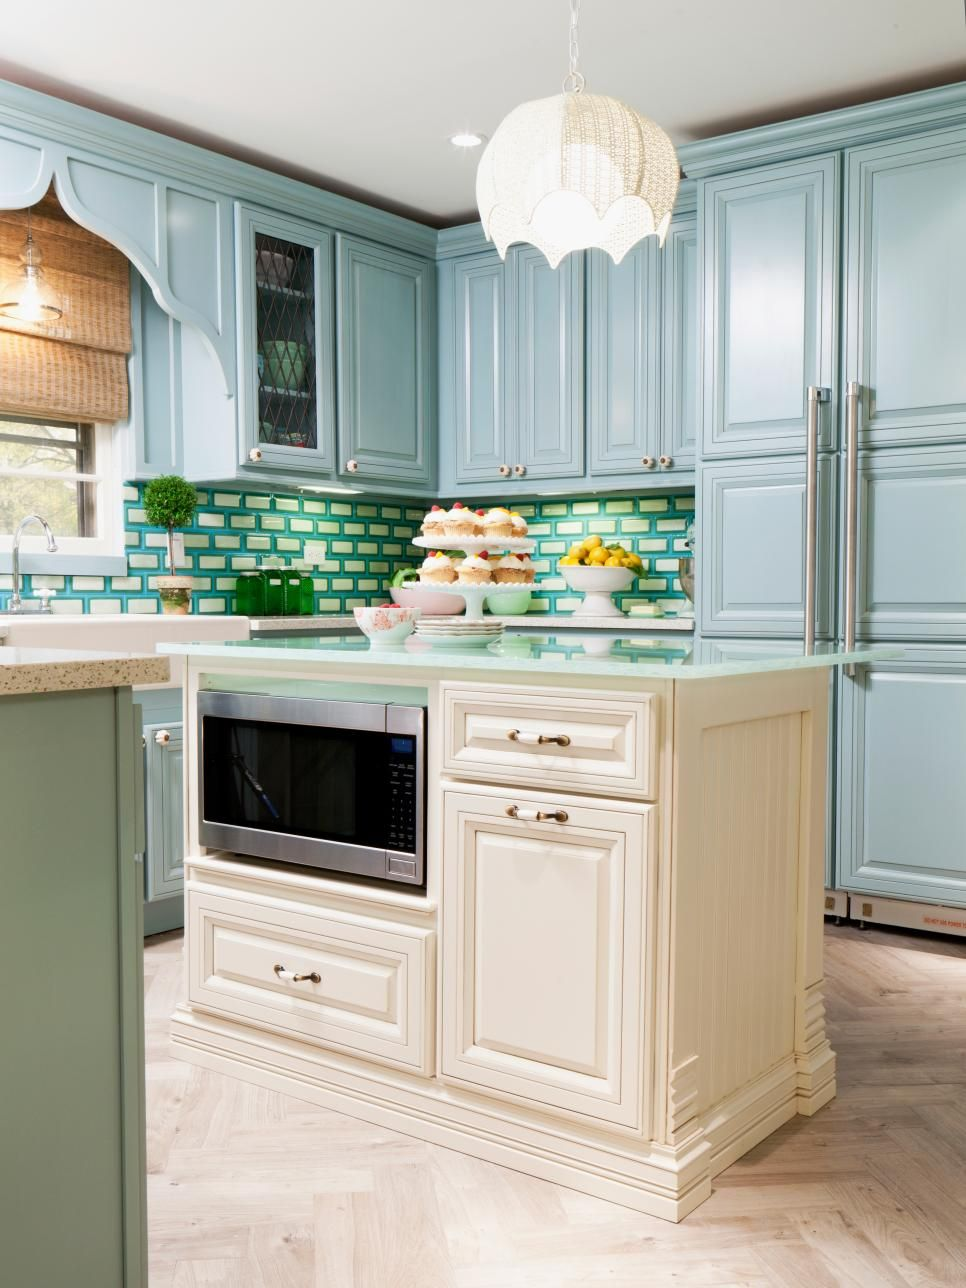 25 Colorful Kitchens 25 Colorful Kitchens